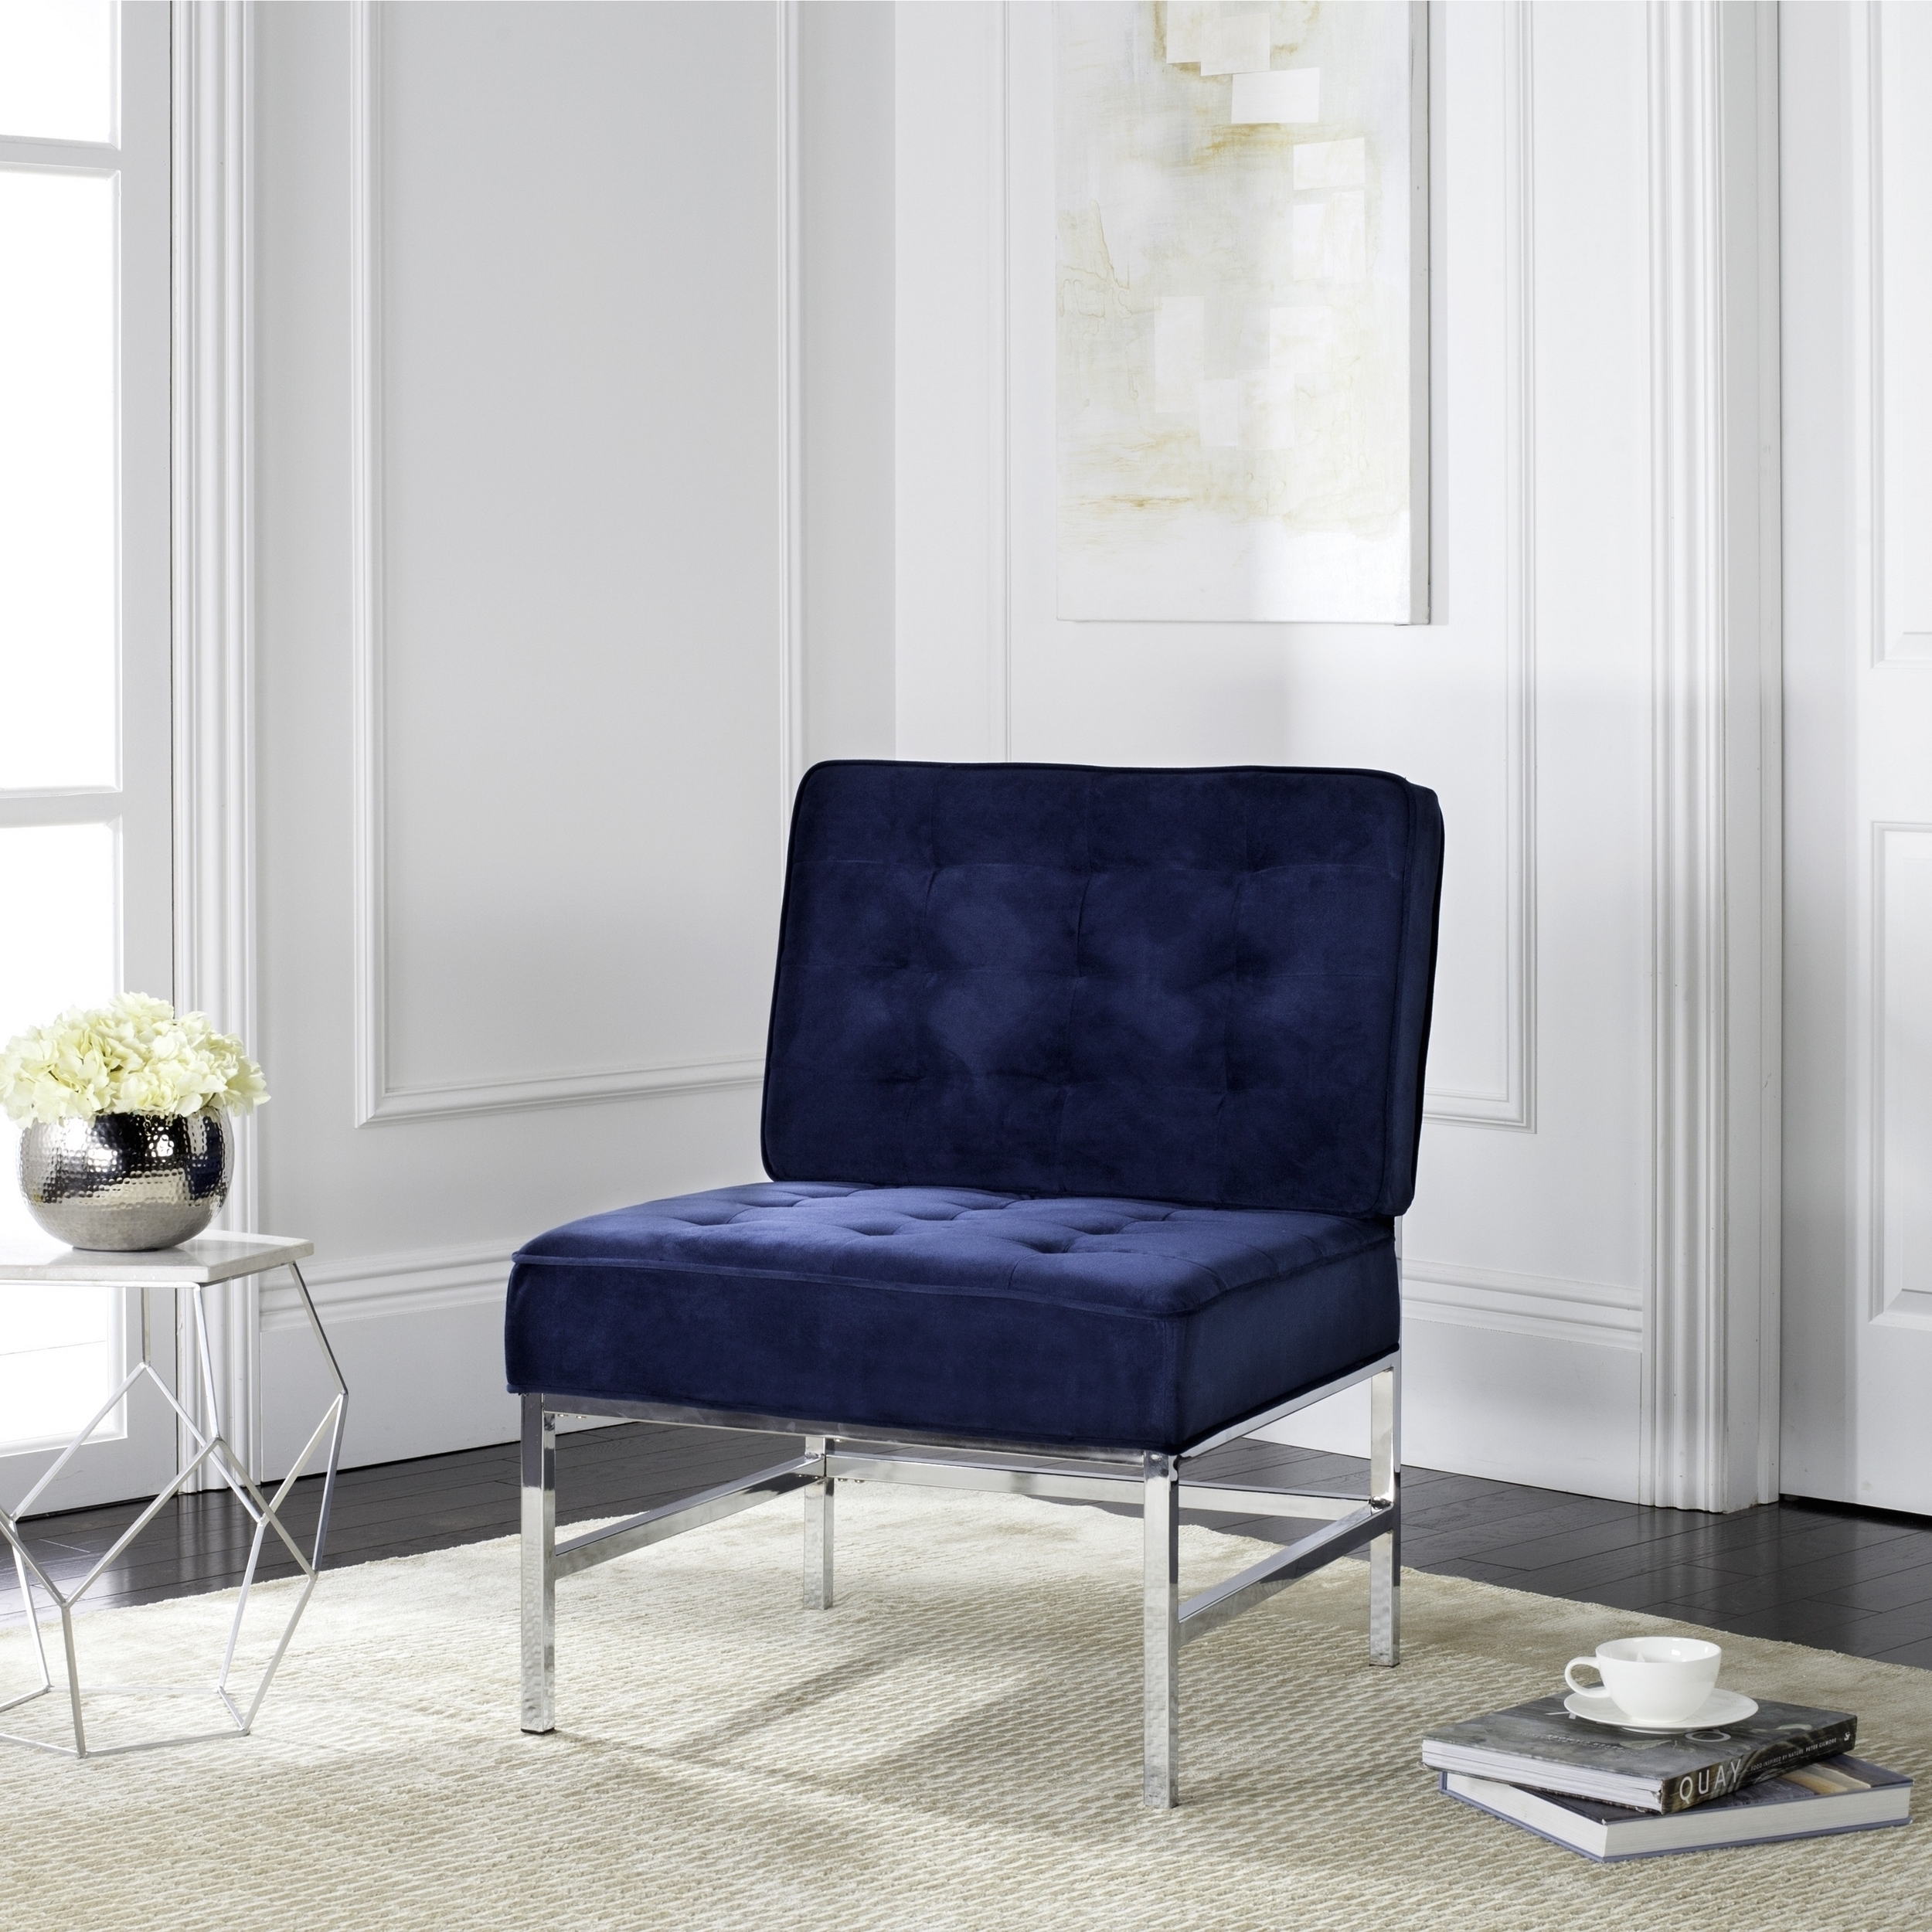 Preferred Ansel Blue Velvet Tufted Accent Chair Contemporary Armless Sofa Intended For Accent Sofa Chairs (View 13 of 15)